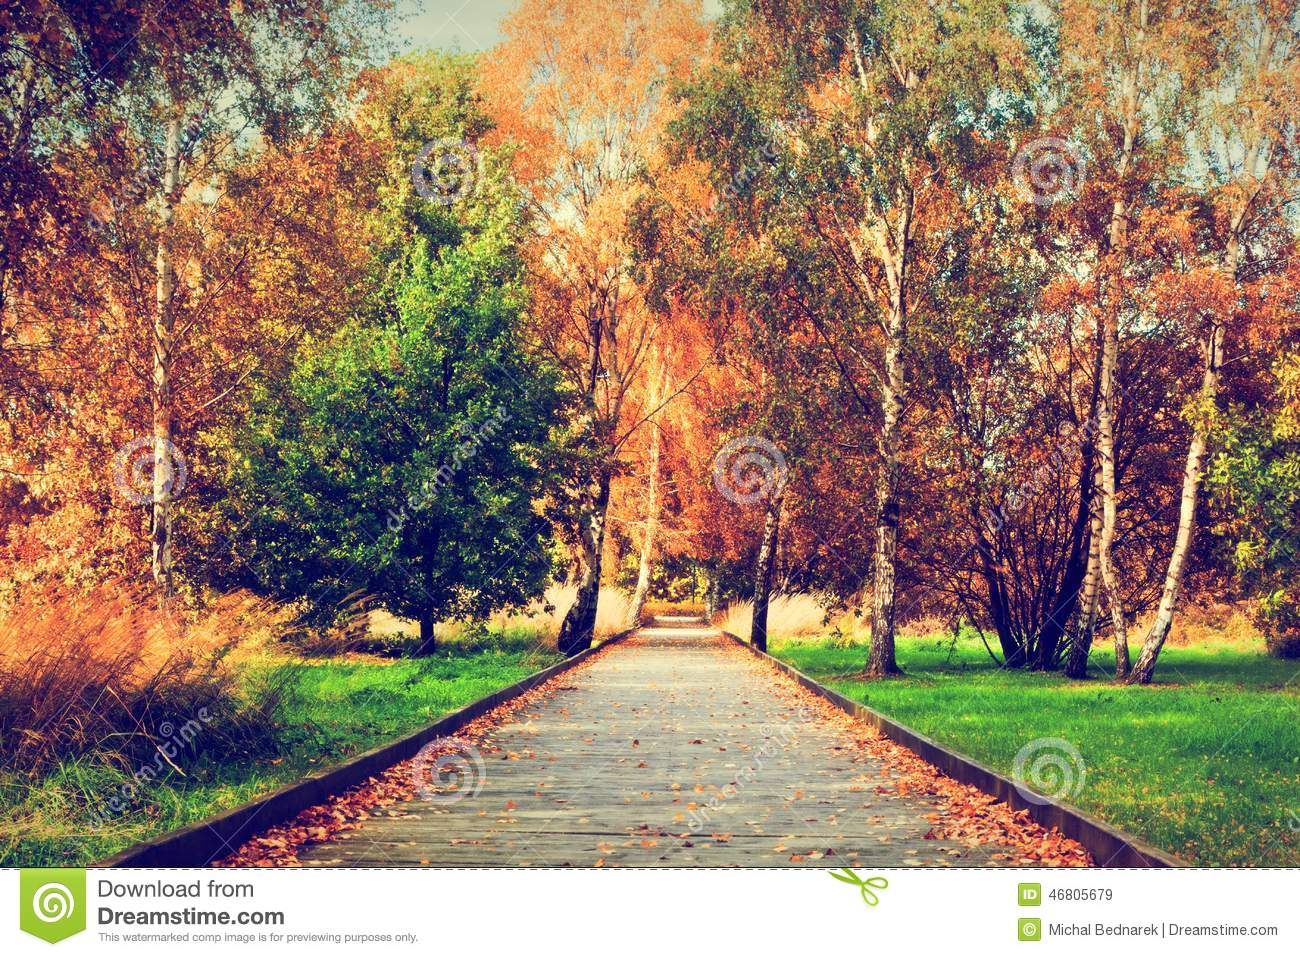 Autumn, fall park. Wooden path, colorful leaves on trees.